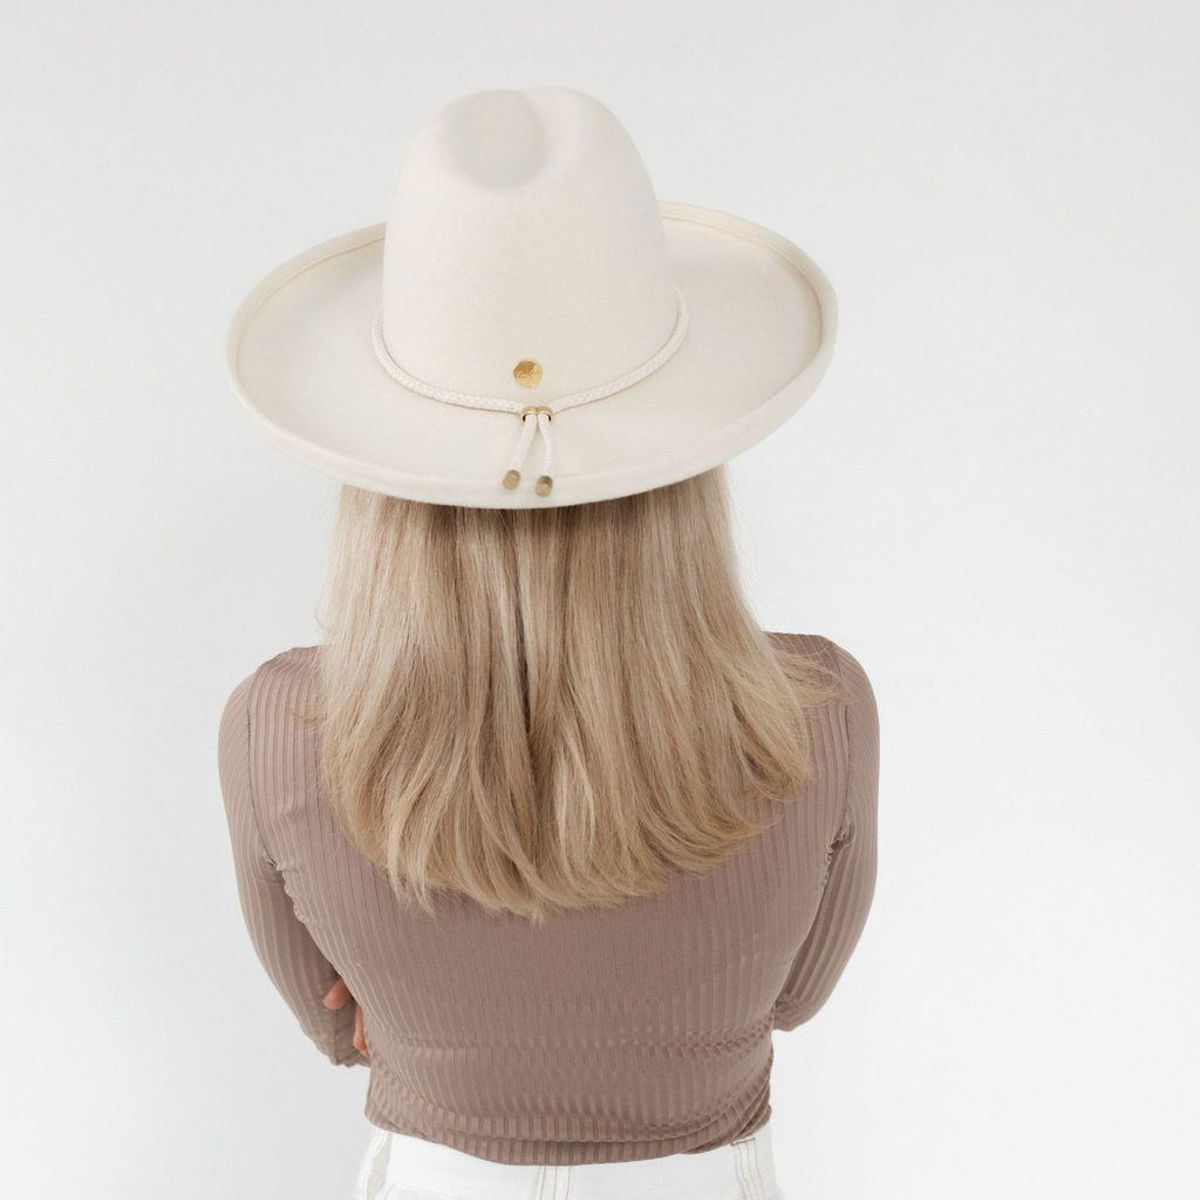 Load image into Gallery viewer, Off white hat with brim and tie around the hat